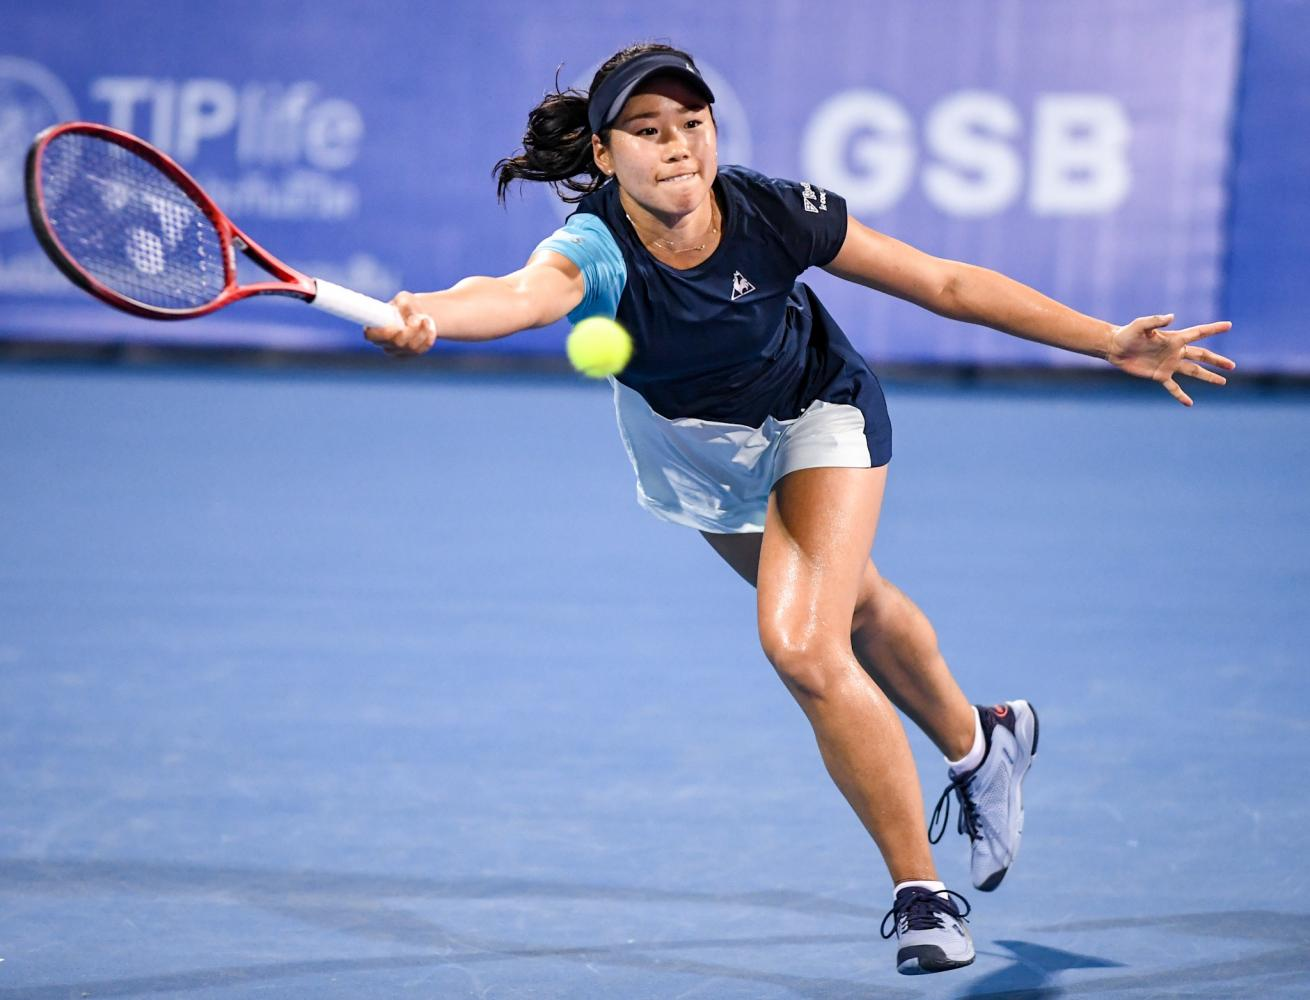 Nao Hibino stretches for a forehand return during her quarter-final match against Elina Svitolina at True Arena Hua Hin.